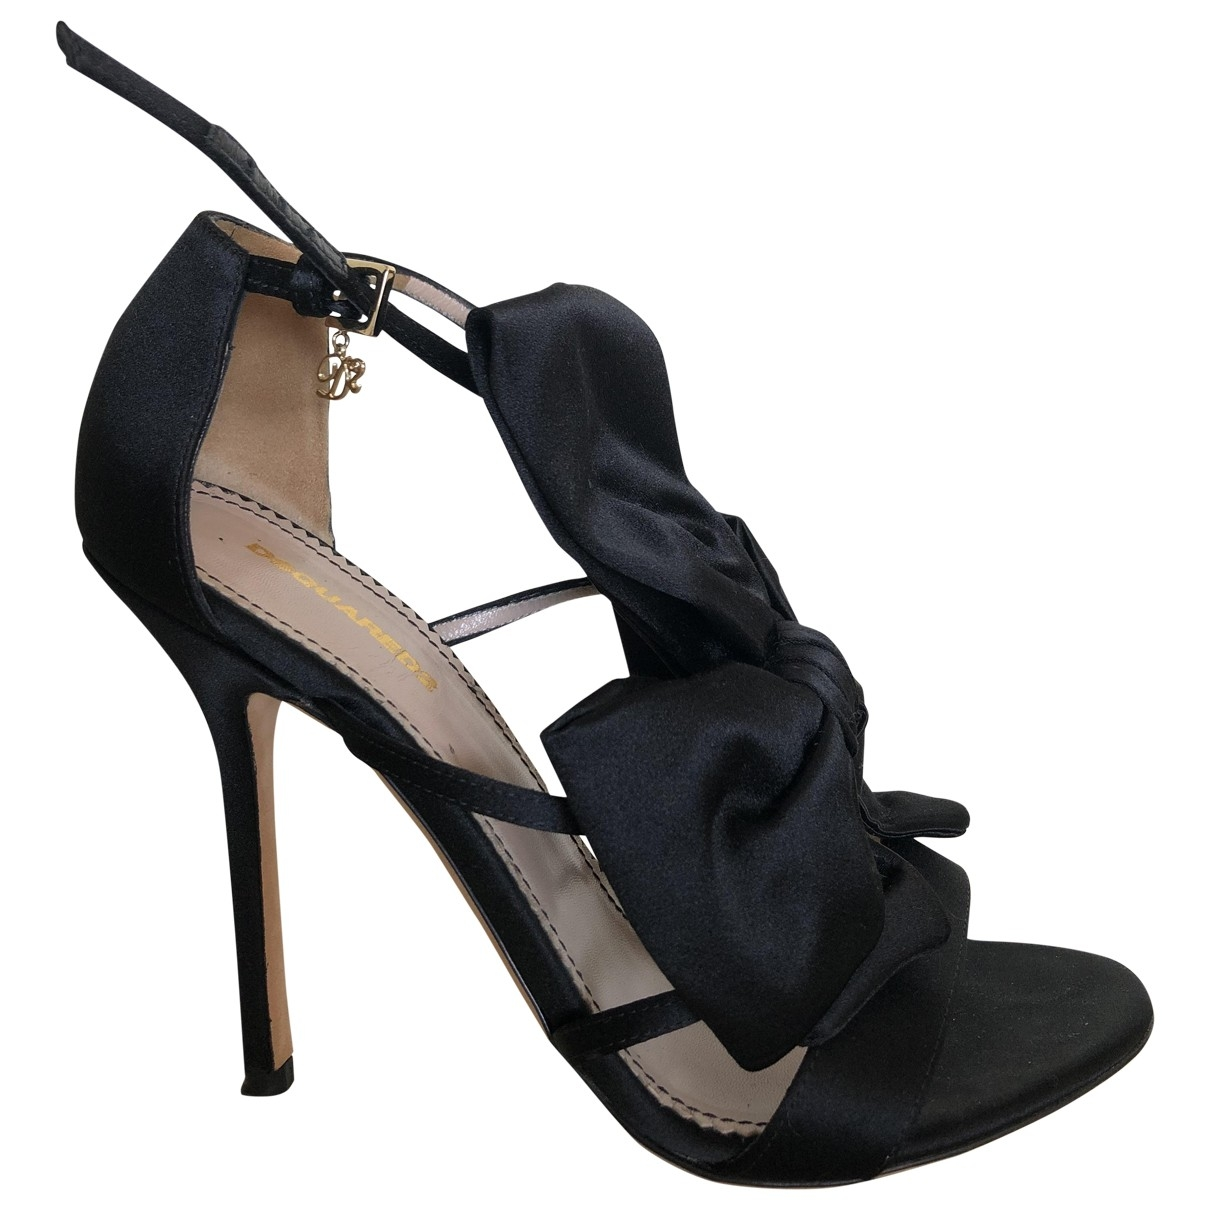 Dsquared2 \N Black Leather Sandals for Women 37 EU